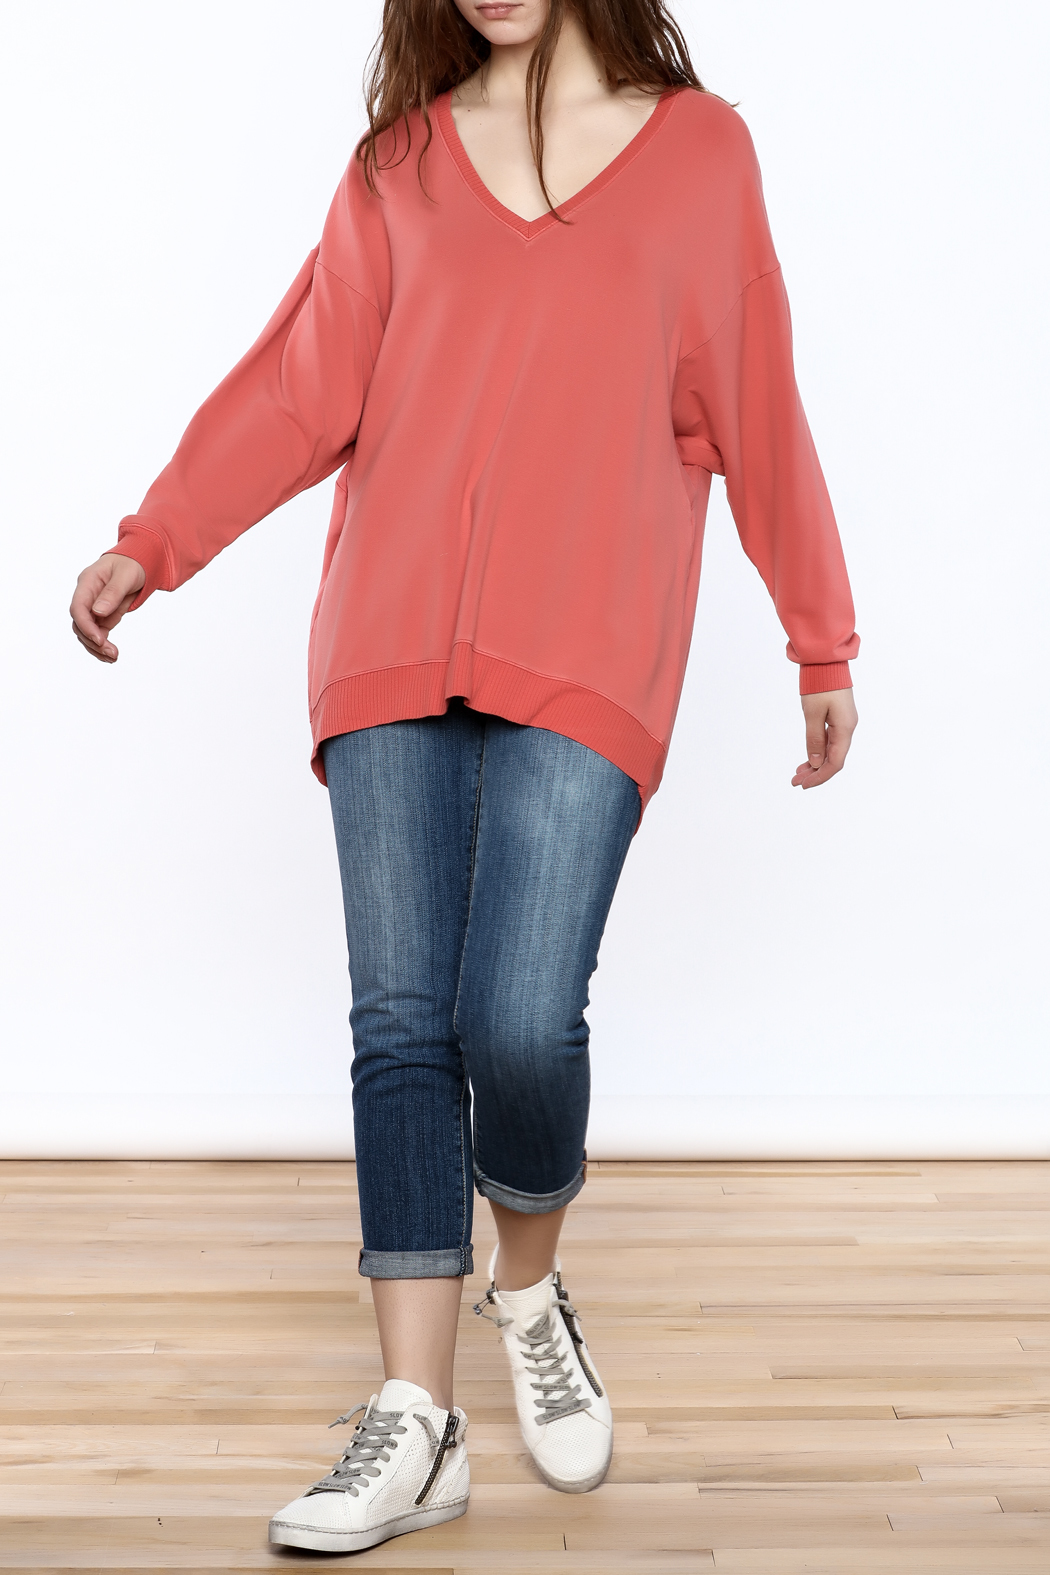 3ff042ec99e86 JOH Oversized Coral Sweatshirt from Wyckoff by Bedford Basket ...